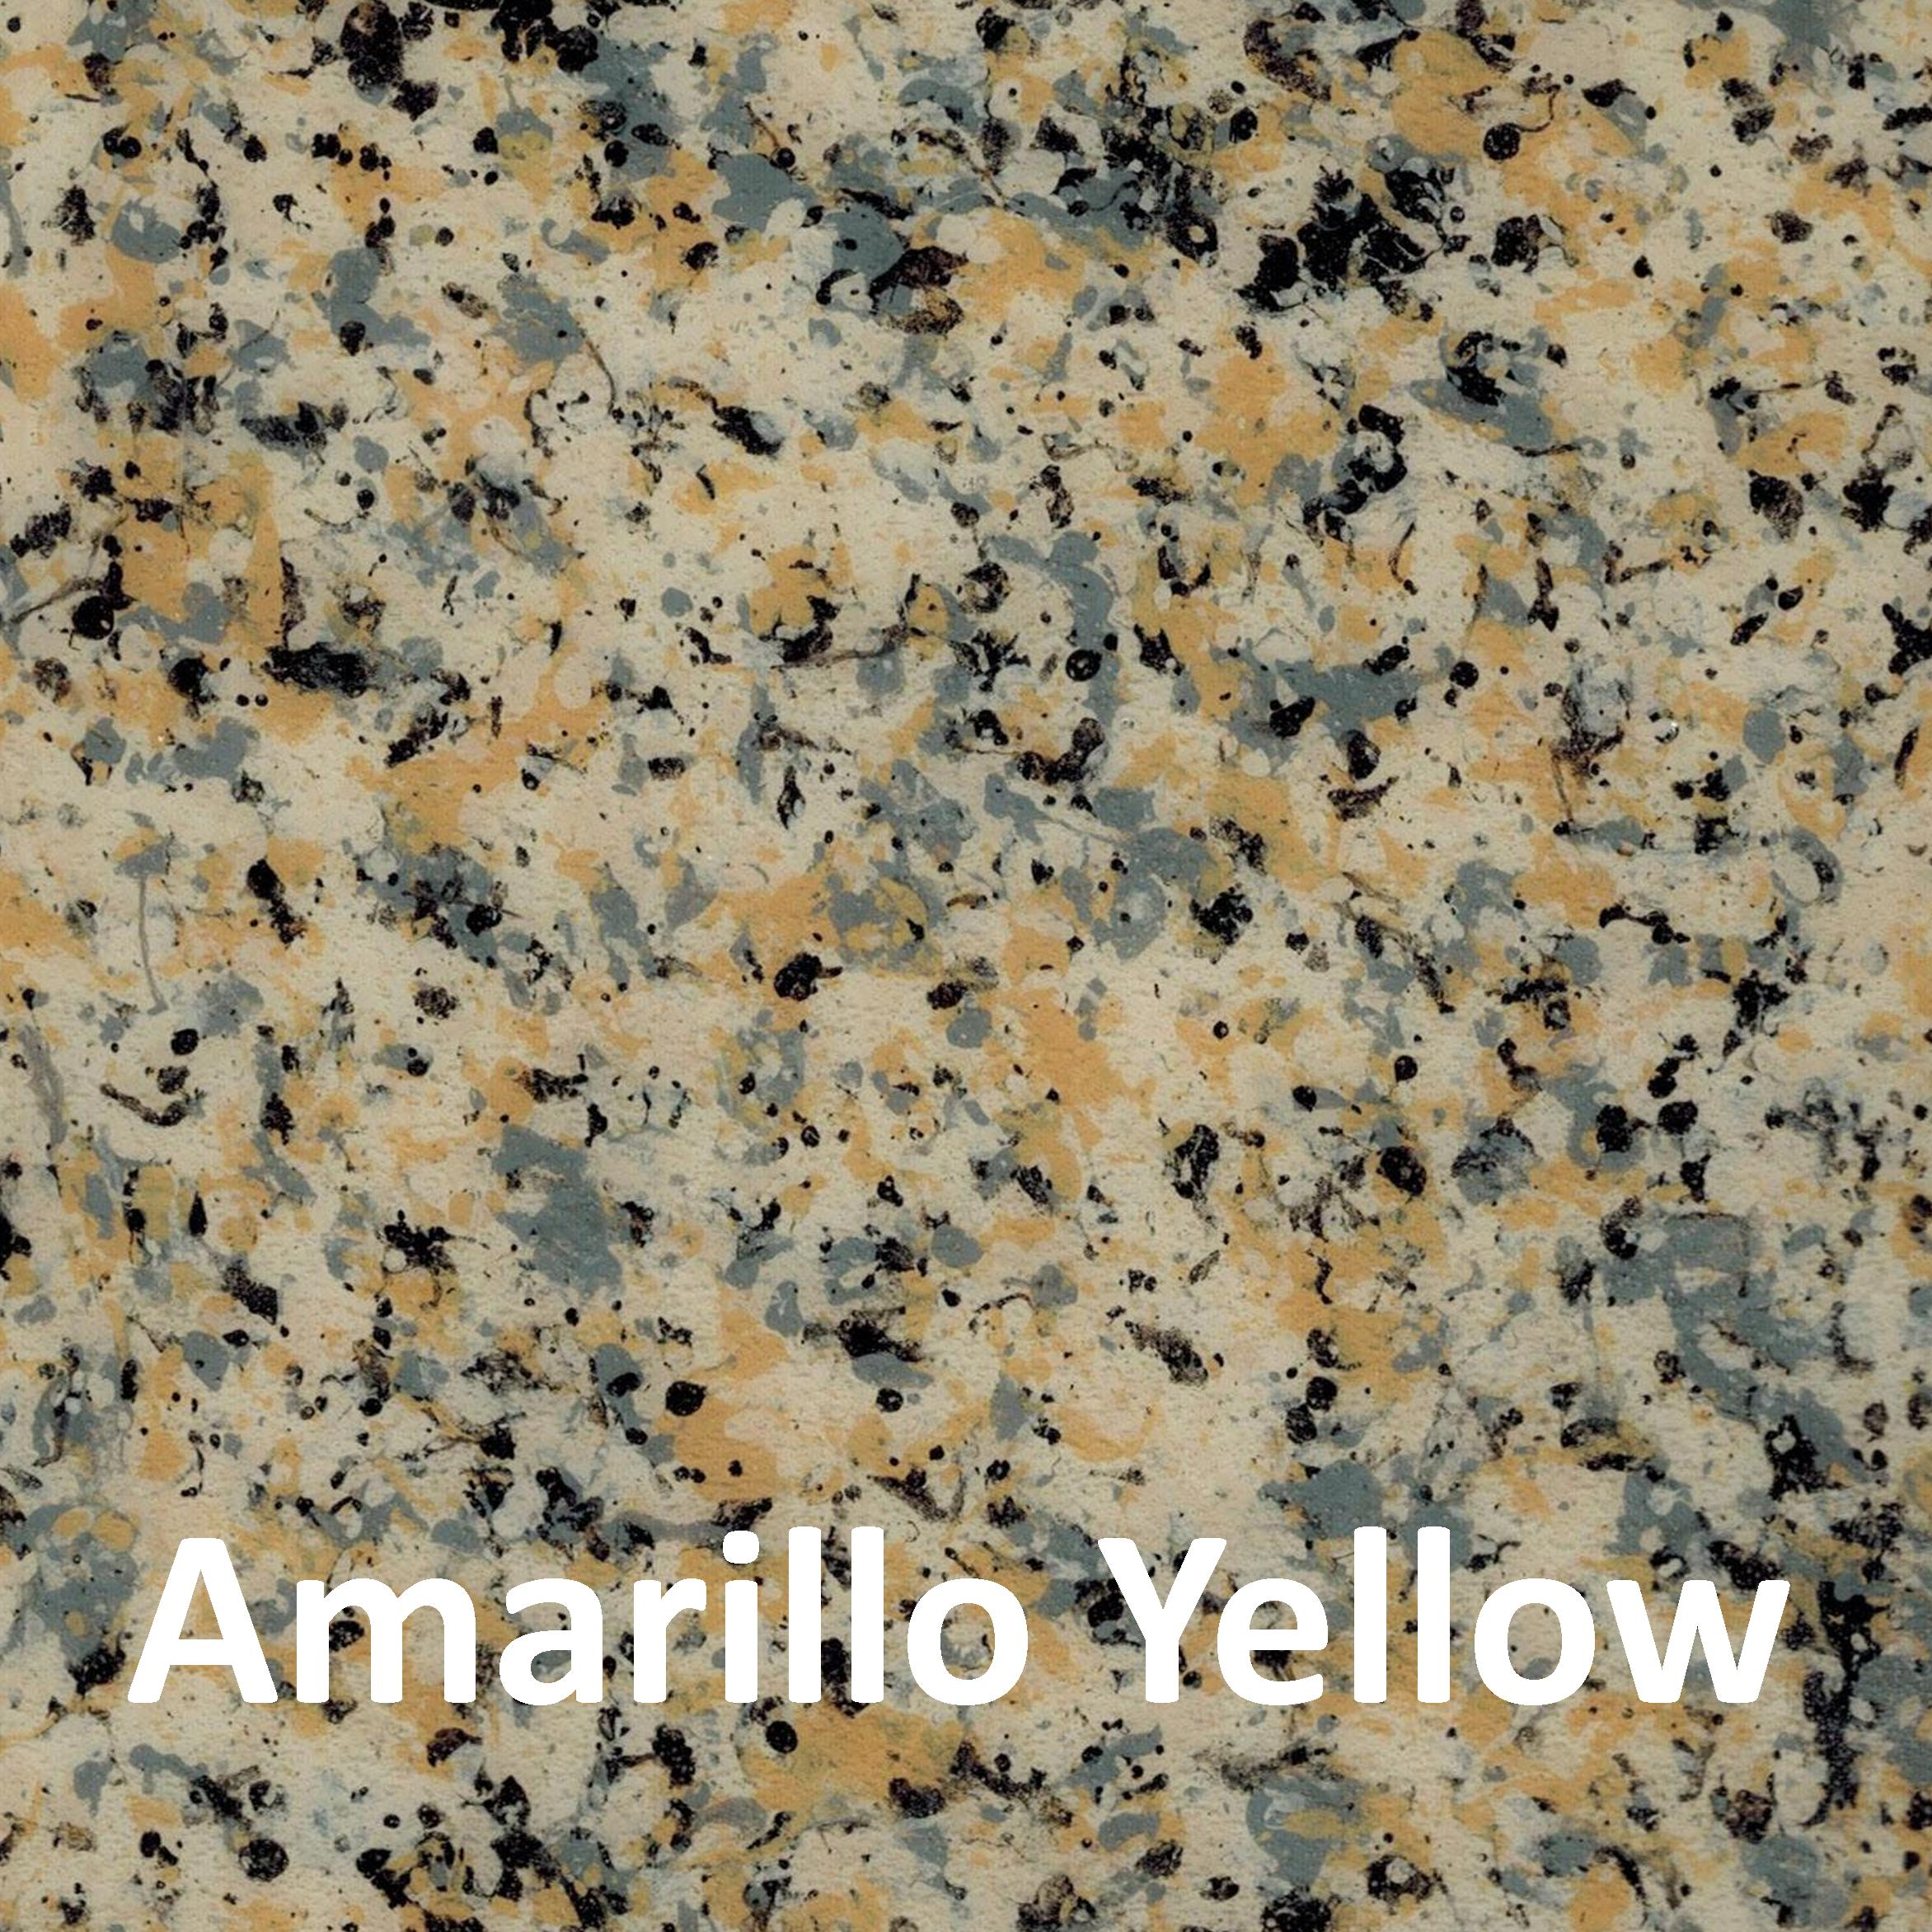 amarillo-yellow-label.jpg